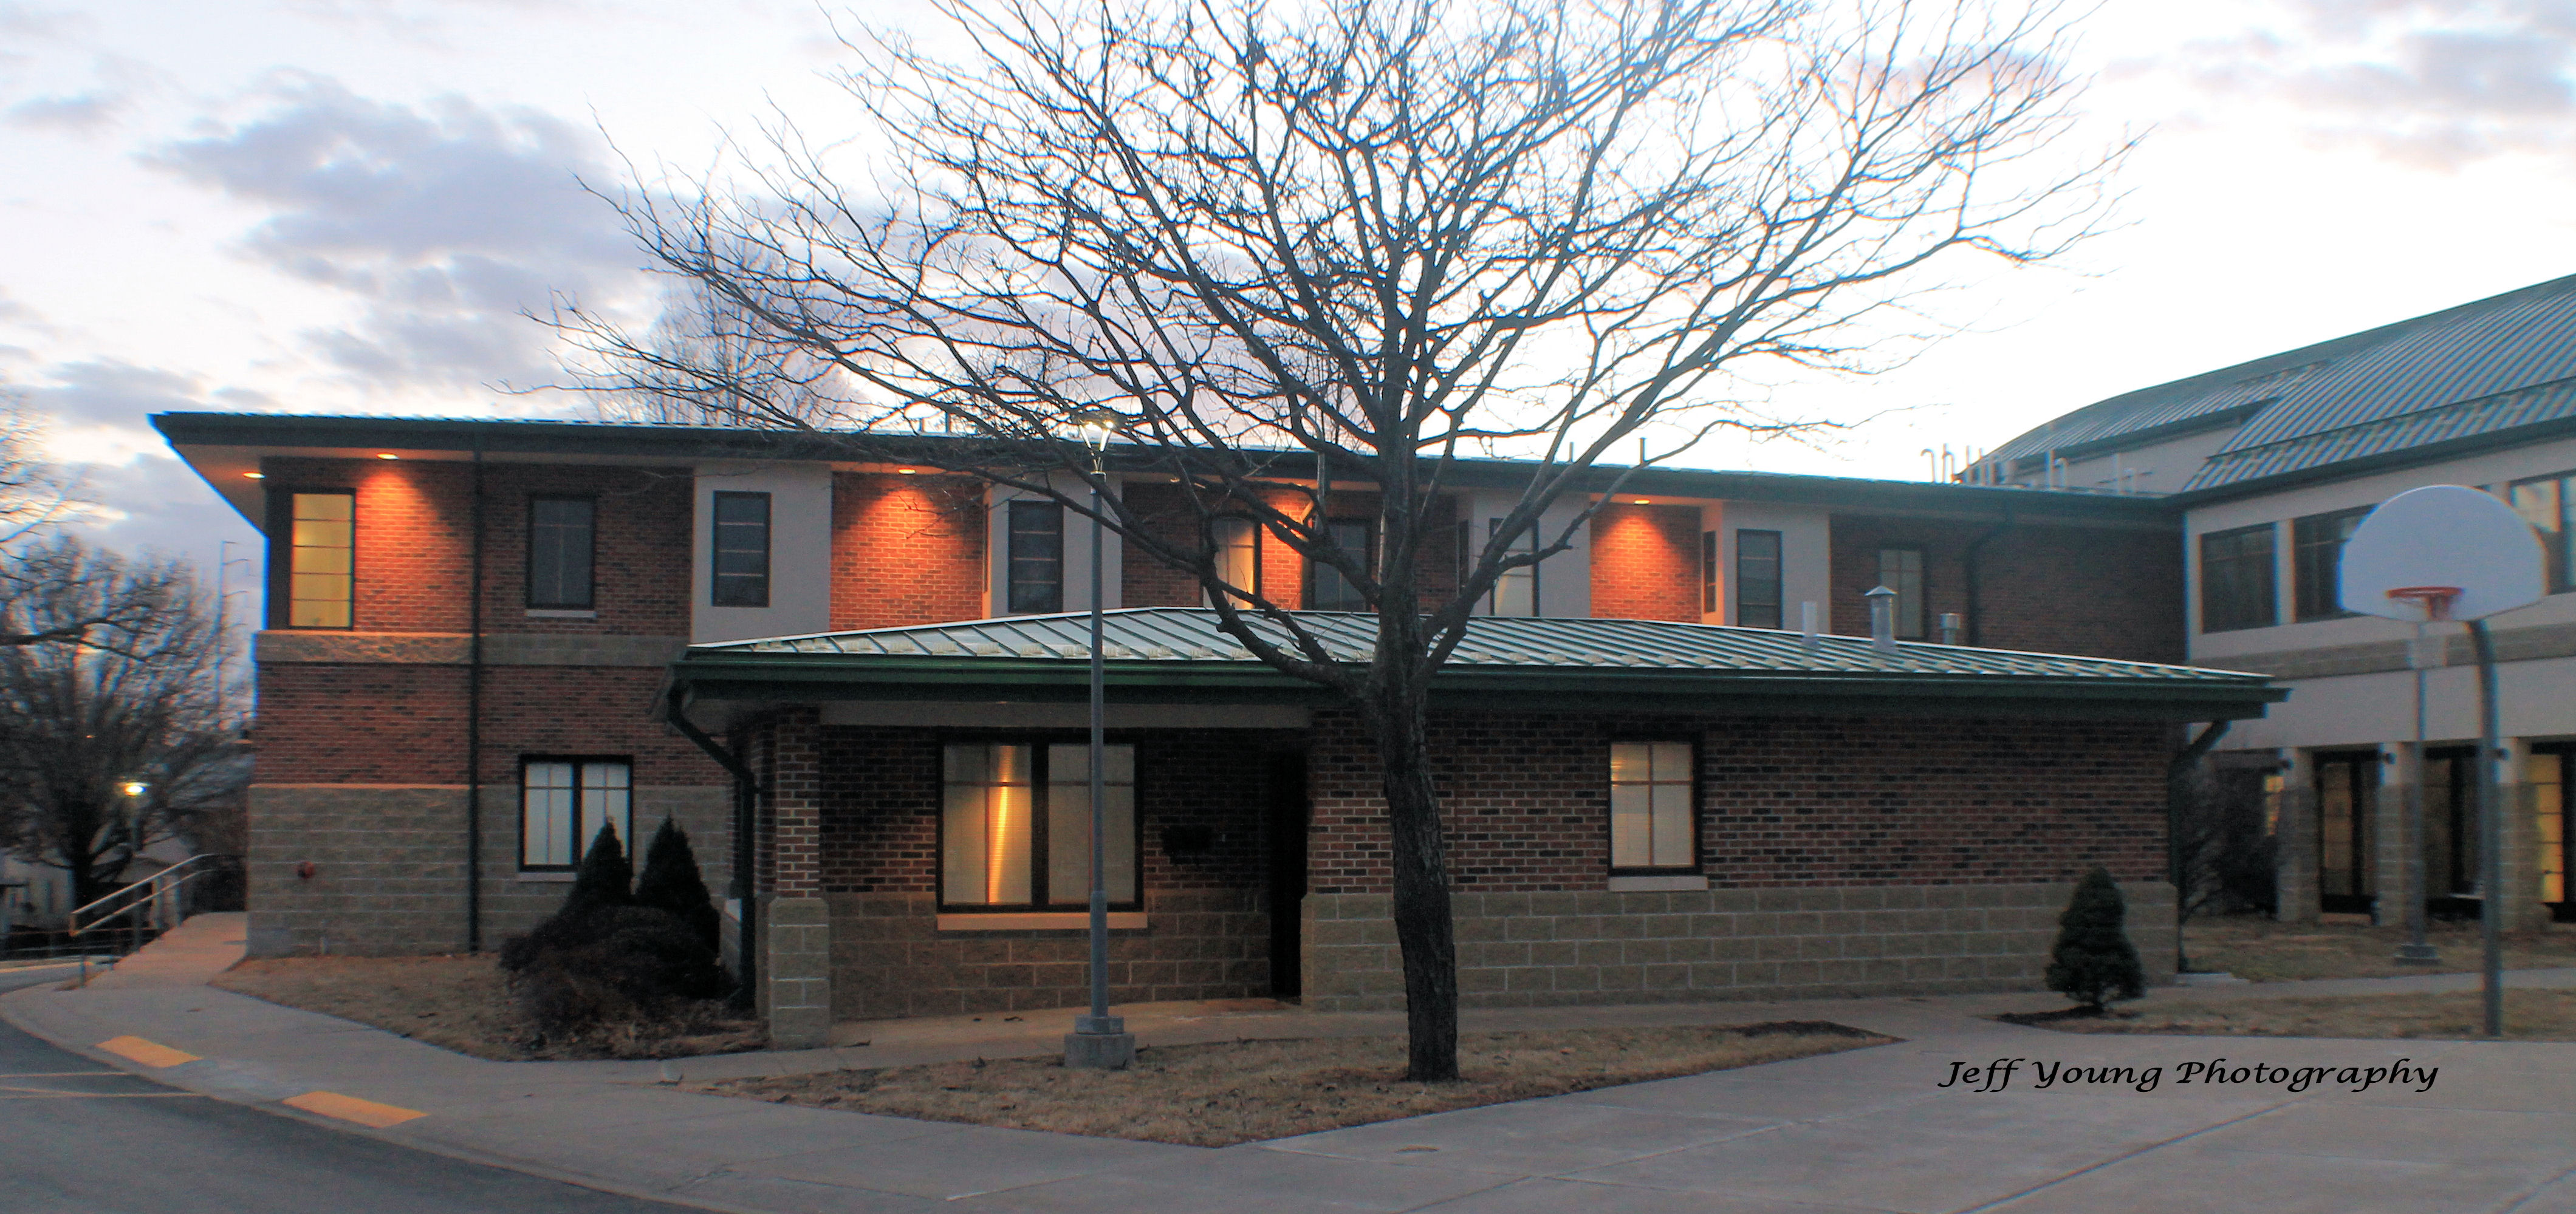 Two story brick building with a large tree, empty of leaves and a light pole in front. Night Lights beam from the 2nd story eaves shining orange in the sunset.